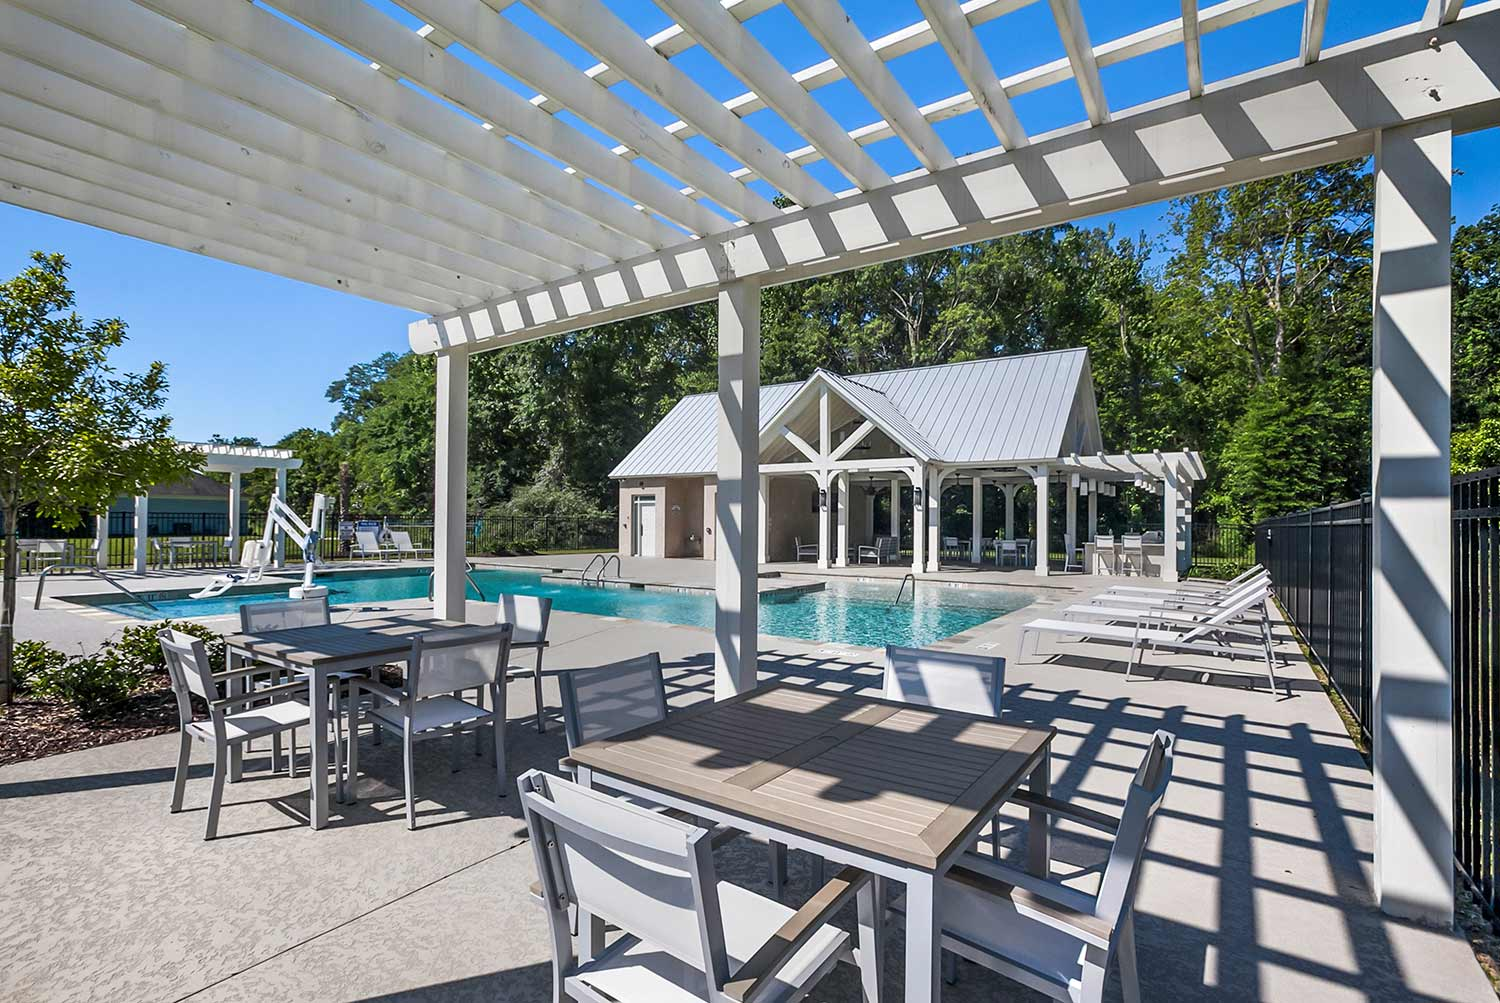 Pool & Pavilion - The picturesque pool and spacious deck allow plenty of room for friends and family to gather.